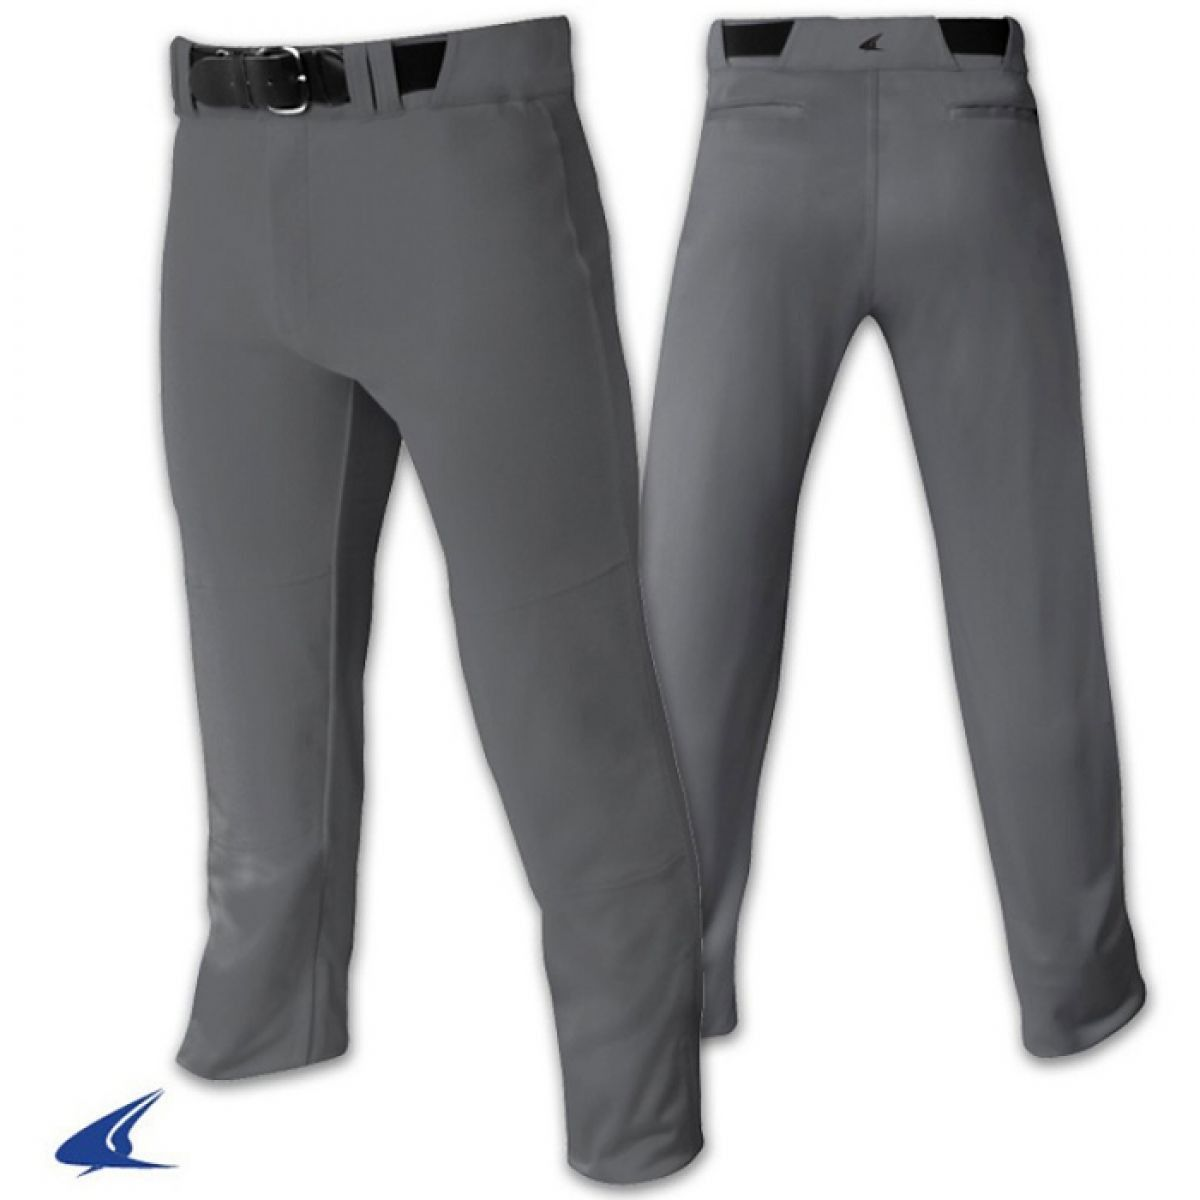 Champro Triple Crown Youth or Adult Pro Open Bottom Piping Baseball Pant New